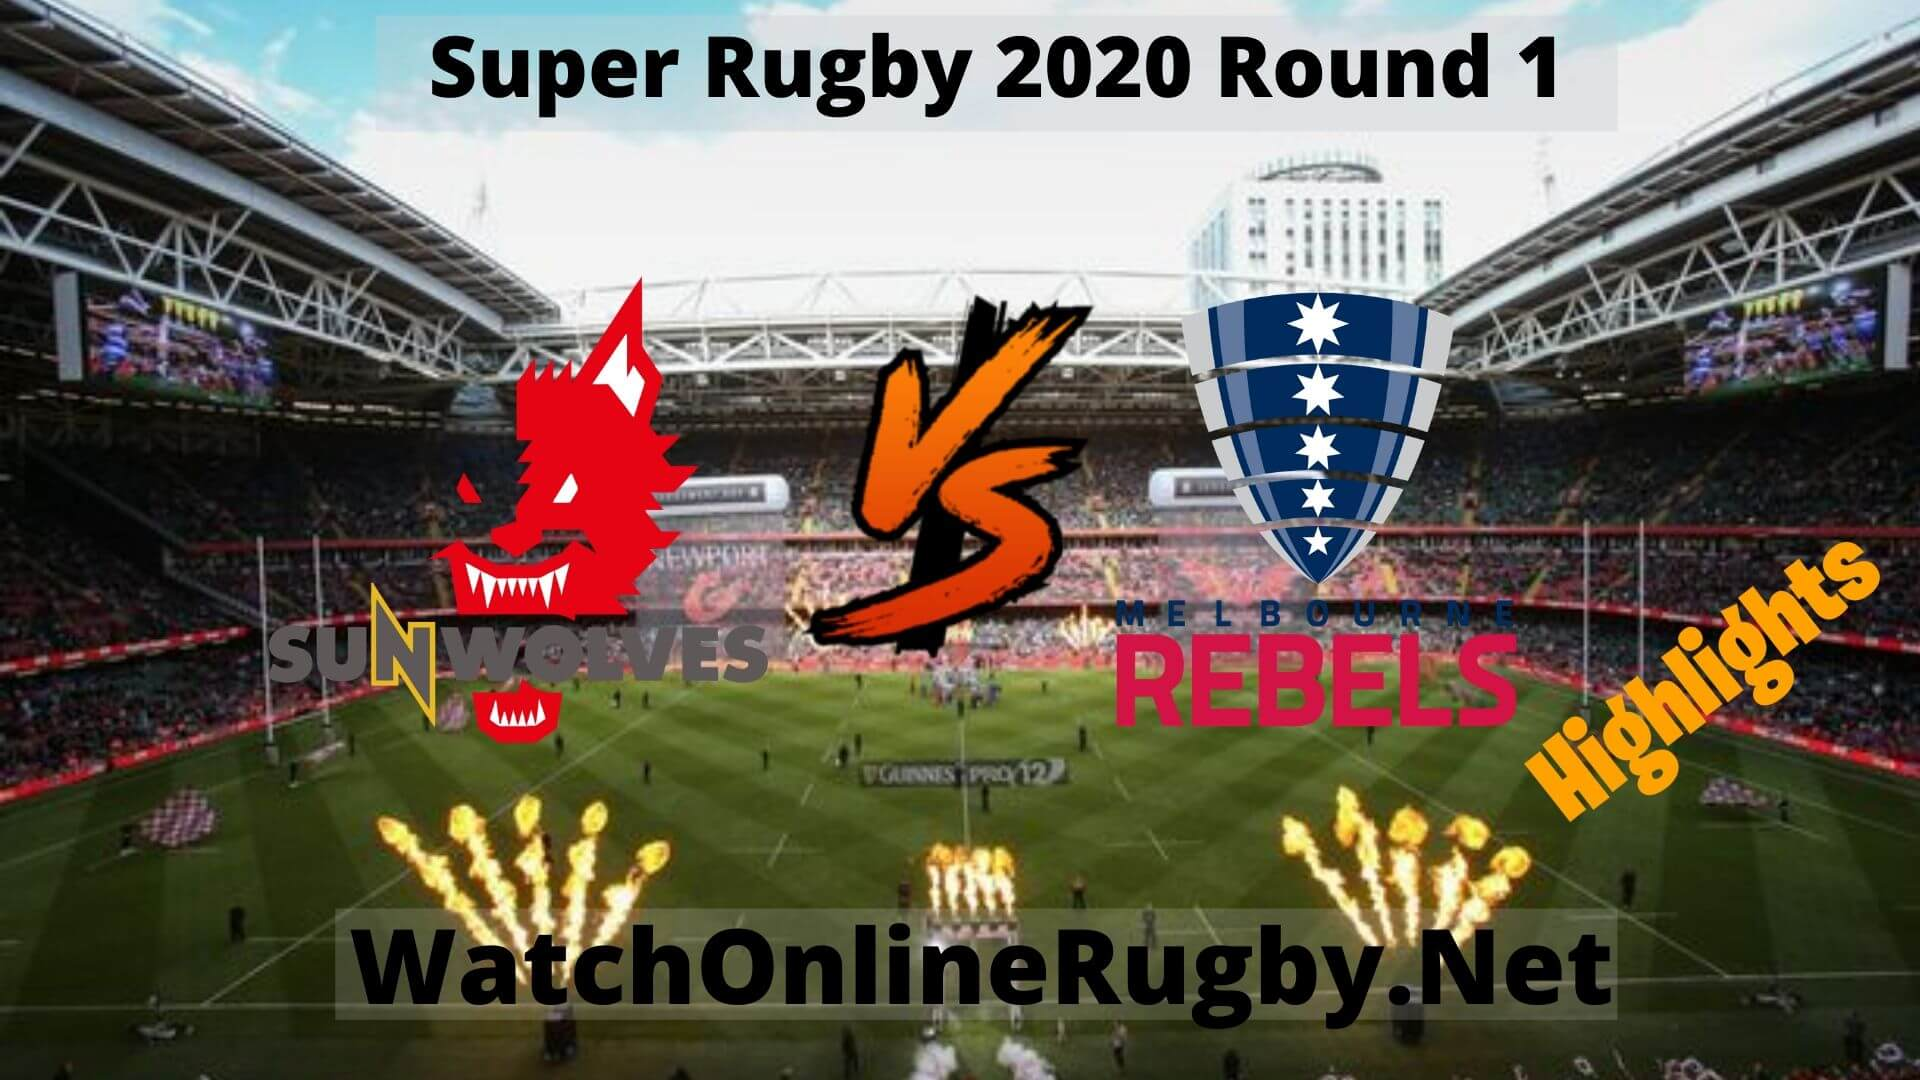 Rebels Vs Sunwolves Highlights Super Rugby 2020 Round 1